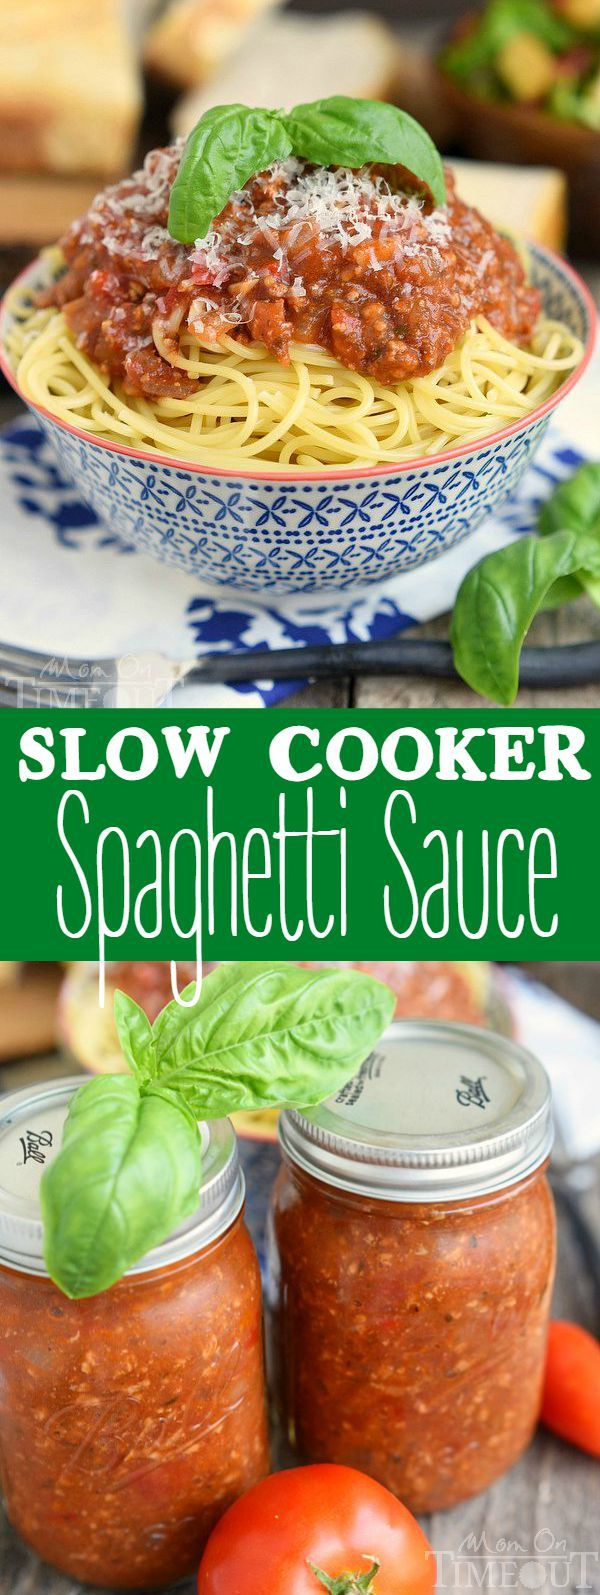 This Slow Cooker Spaghetti Sauce is the perfect dinner solution for busy weeknights! Made with garden fresh tomatoes, you can taste the freshness in every bite. Make it with or without meat - your choice! | MomOnTimeout.com  | #NeedToFeed #ad